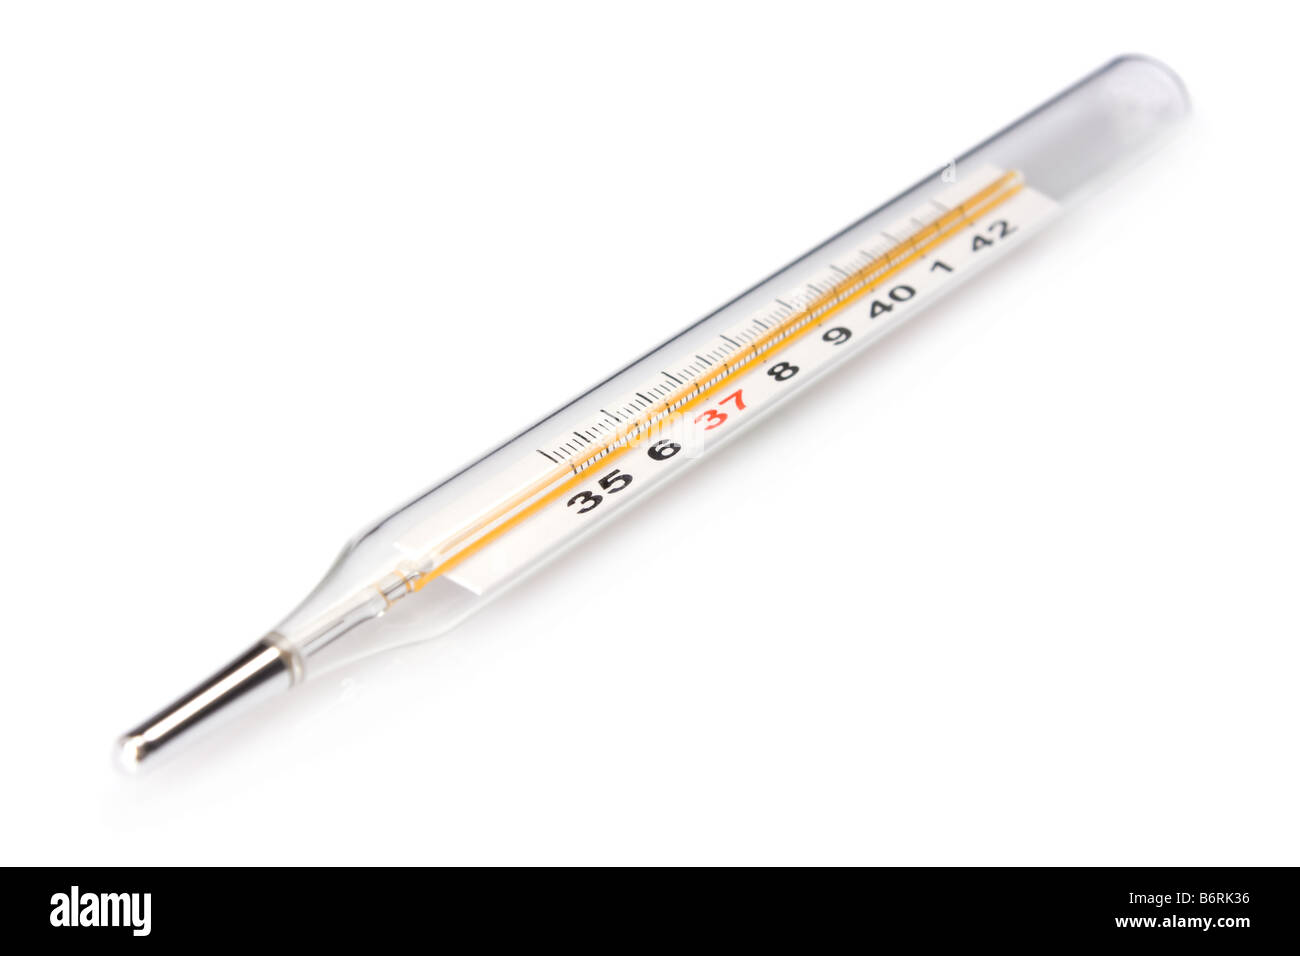 Traditional thermometer to measure body temperature - Stock Image